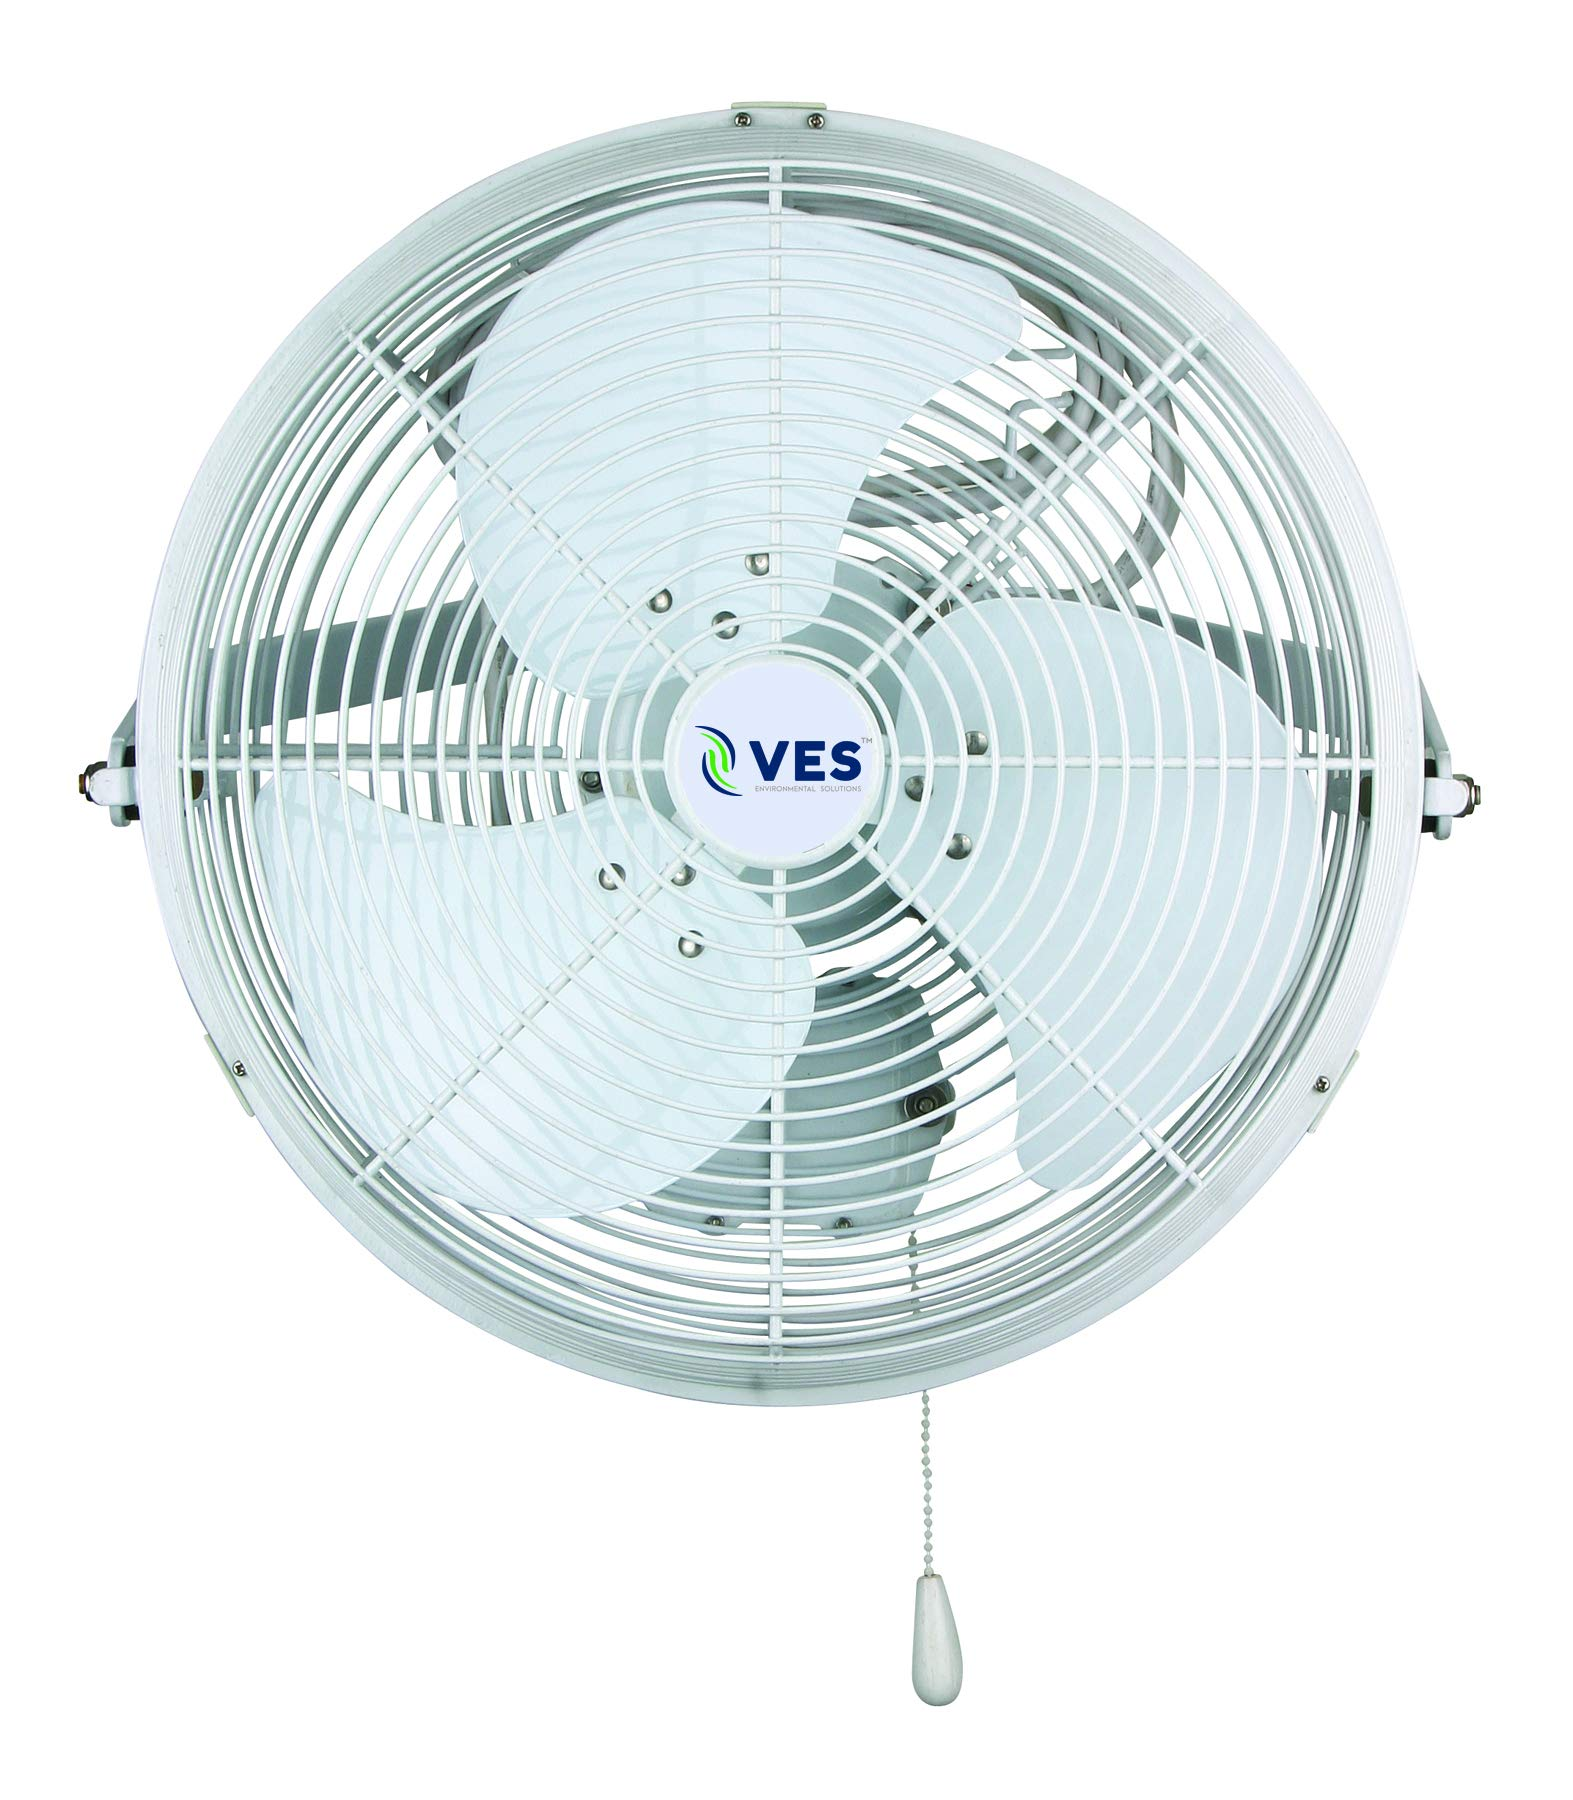 VES Outdoor Moisture Resistant Wall/Ceiling Mount Shop Fan/Industrial Basket Fan for Cooling and Ventilation (18 inch, White) by VES Environmental Solutions